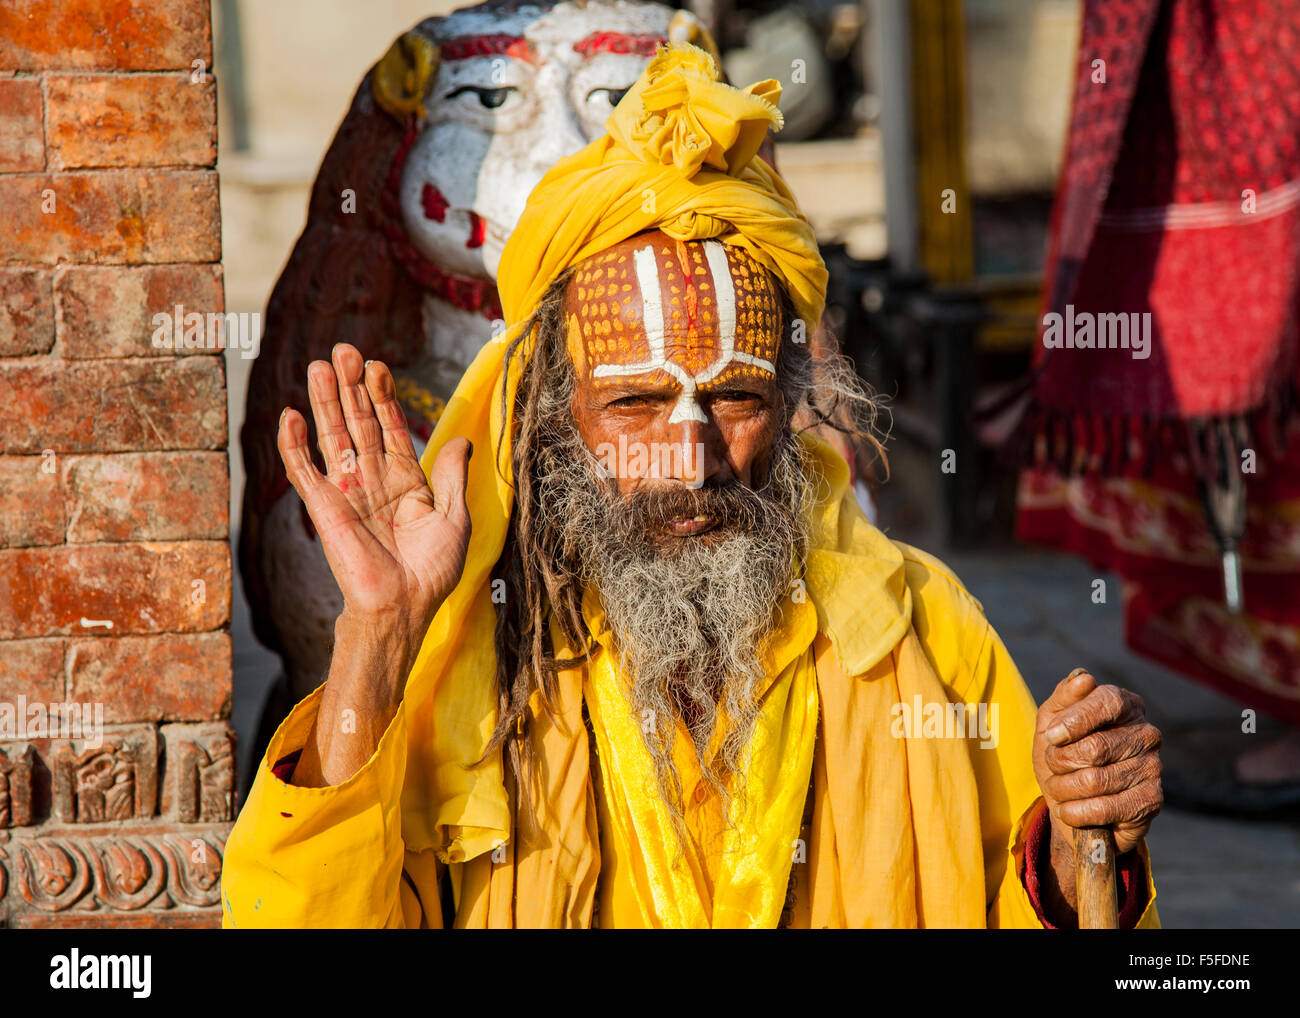 Sadhu,  a religious ascetic considered a holy person in Hinduism, on the streets of Kathma - Stock Image